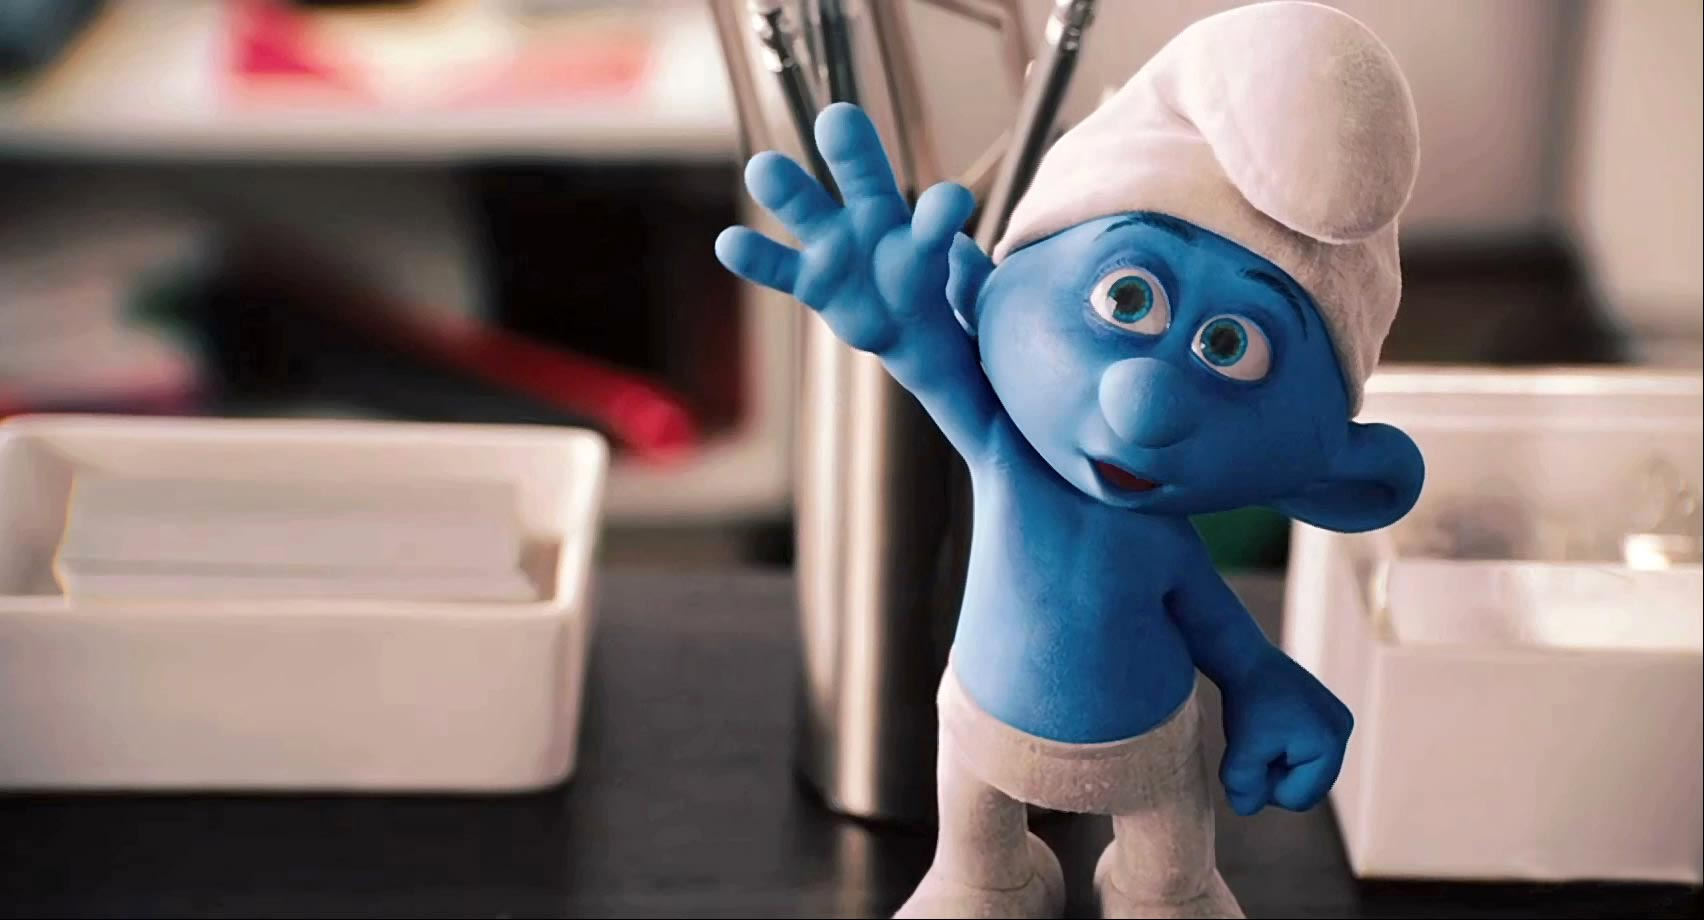 The Smurfs Trailer #2